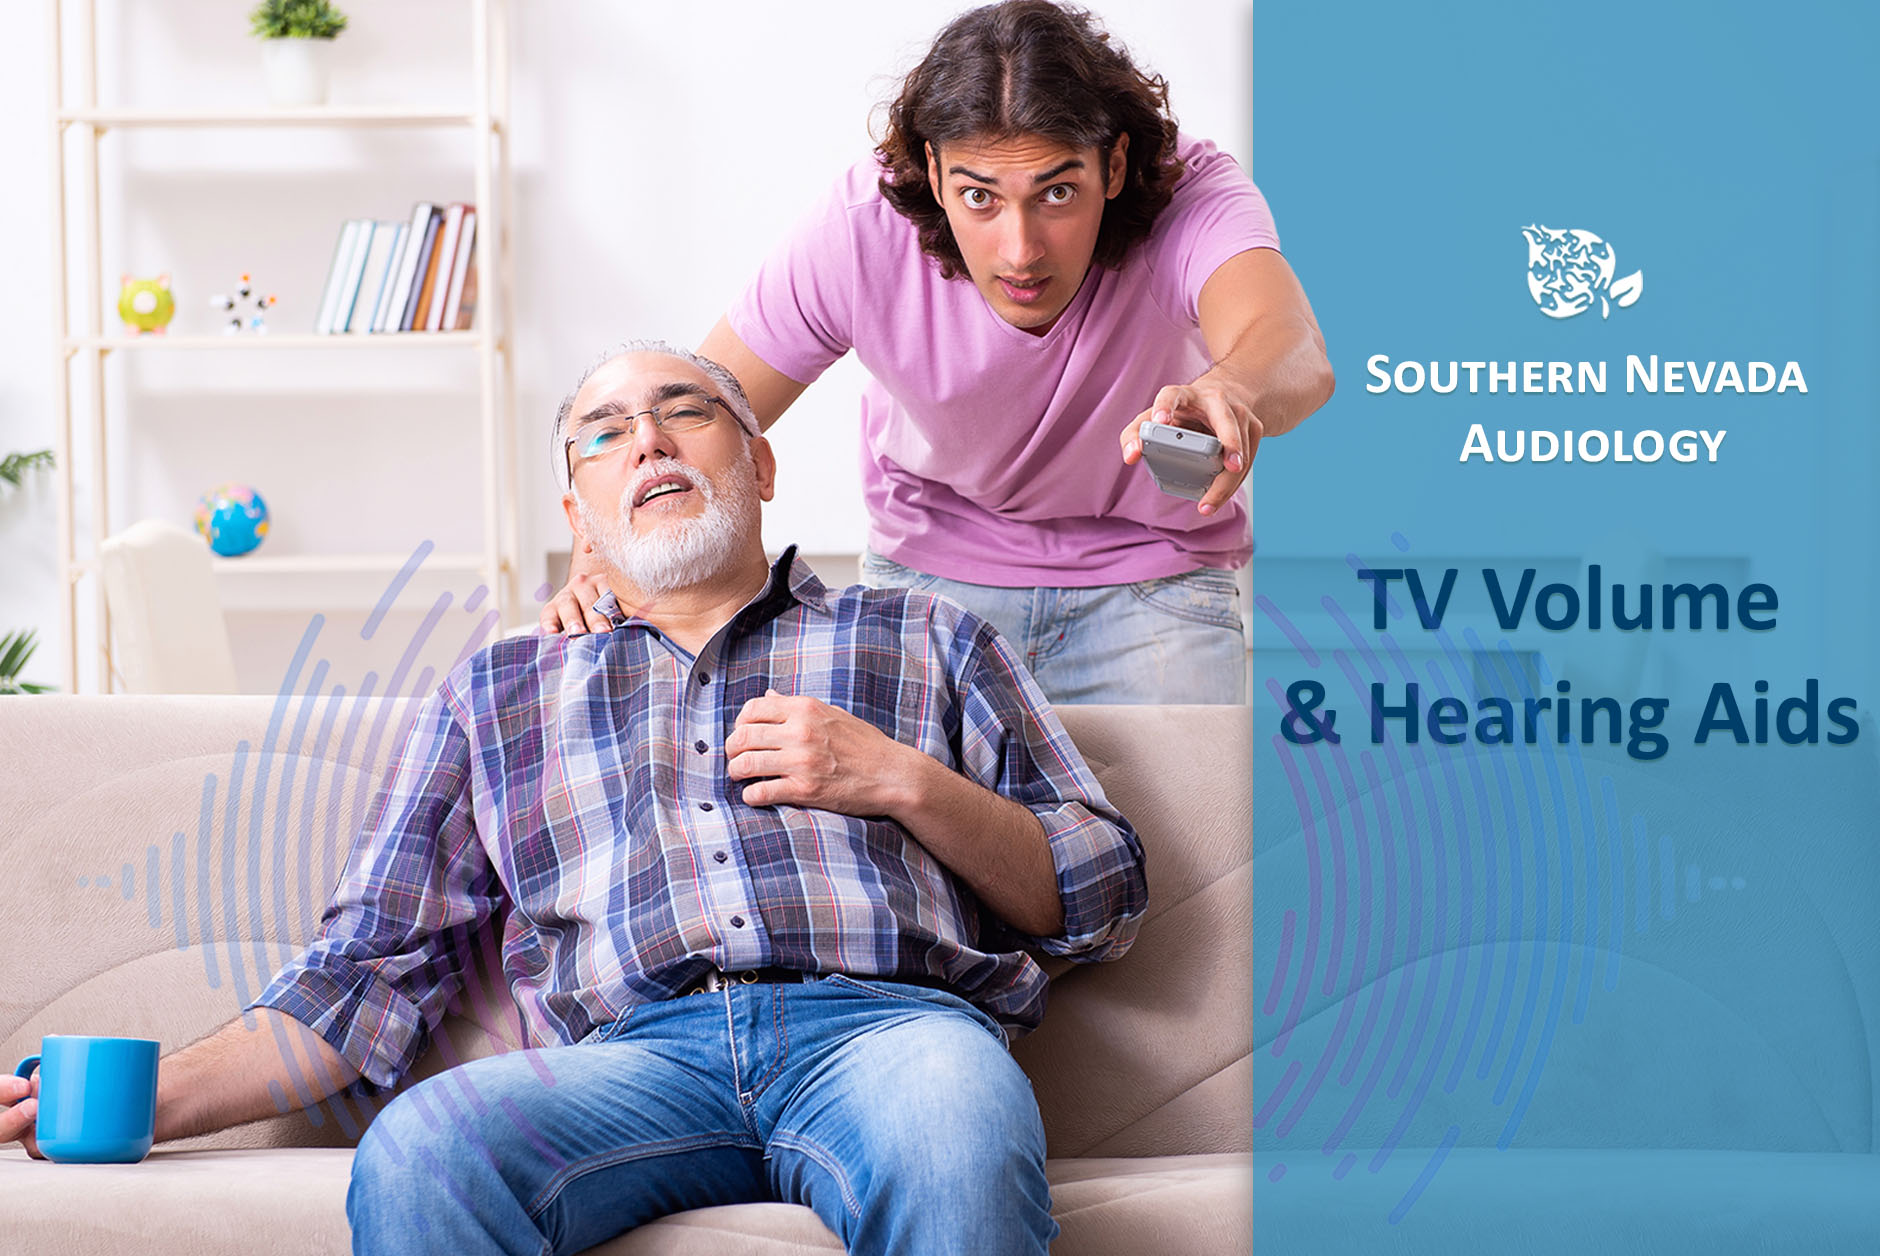 TV Volume & Hearing Aids